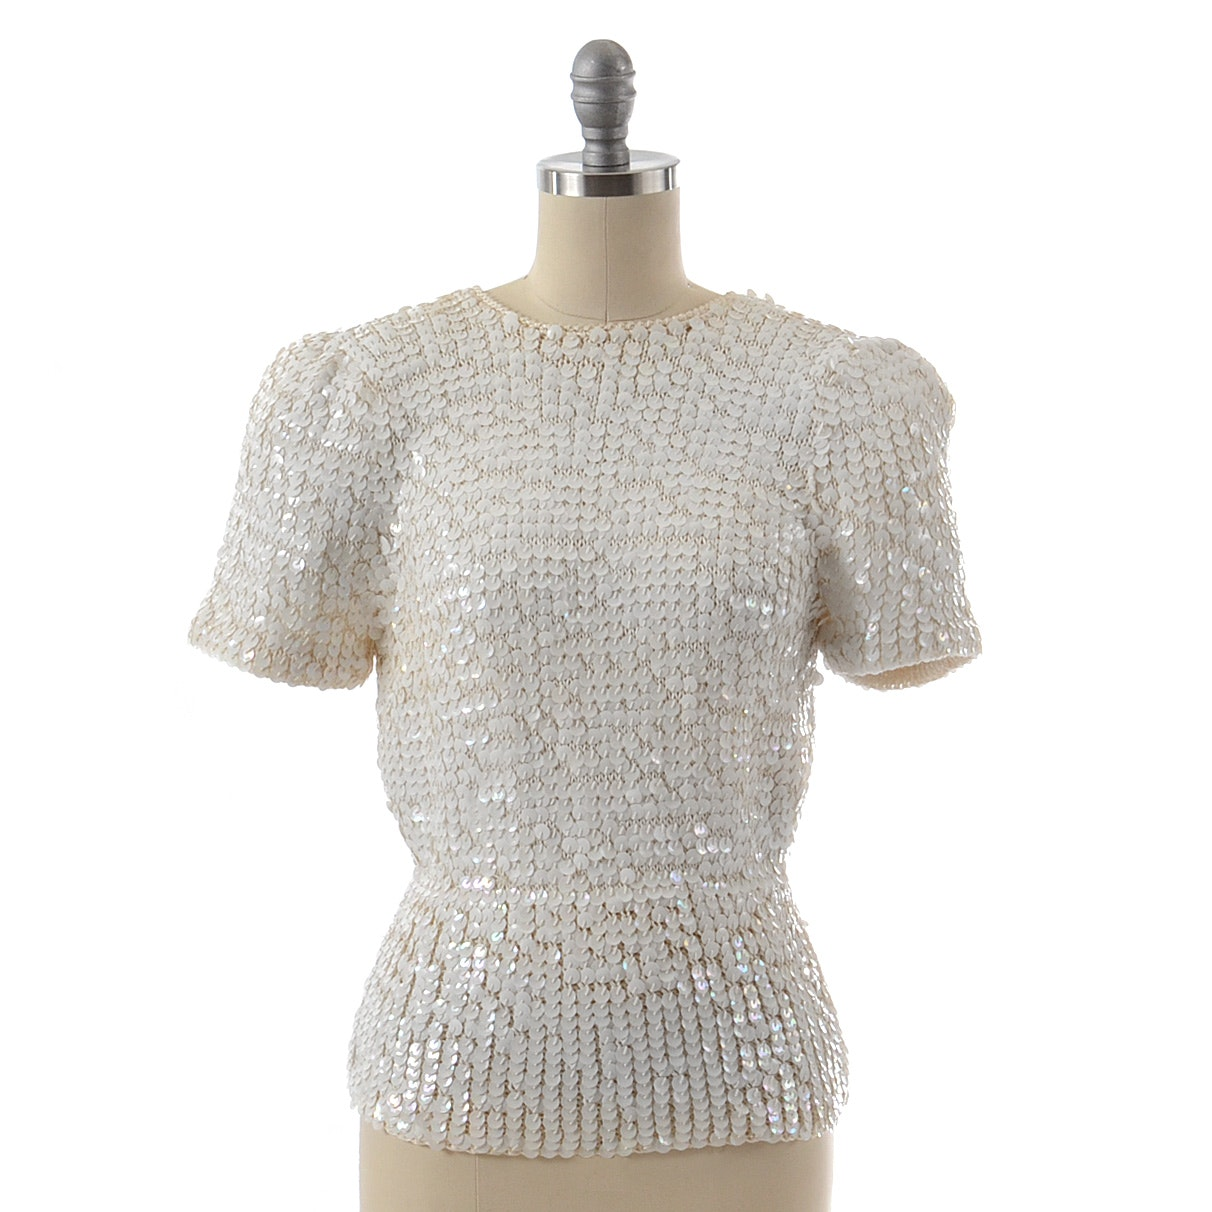 Deadstock 1980s Nanell Ivory Knit Blouse Embellished with Iridescent Sequins and Silk Bow For Saks Fifth Avenue